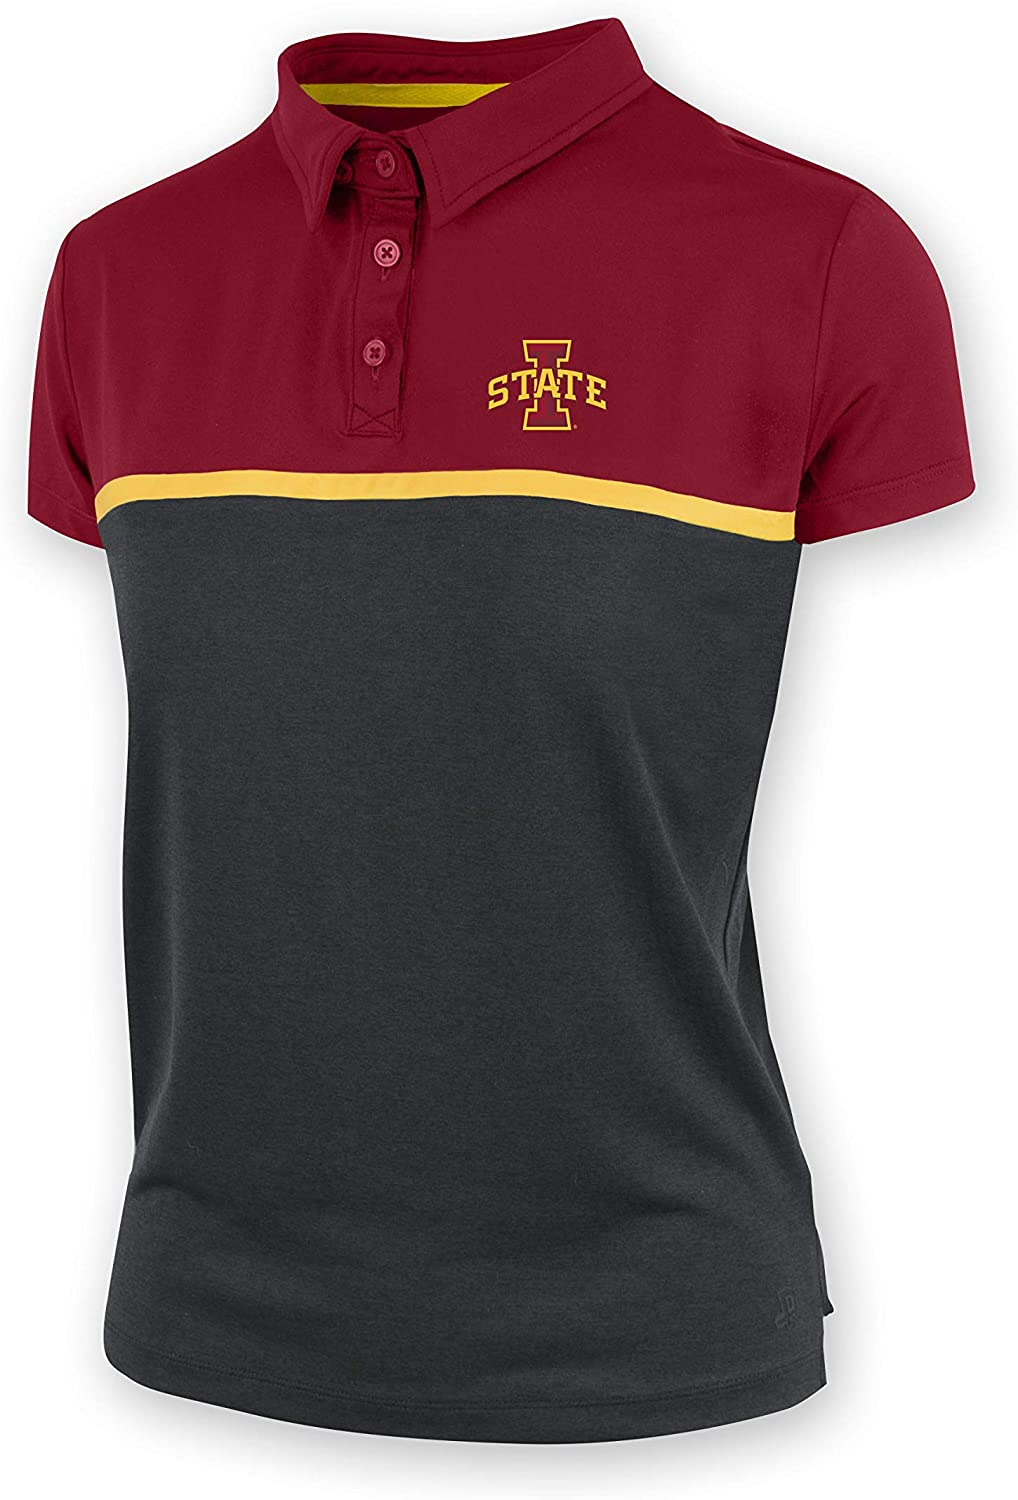 Authentic Brand Iowa State Cyclones Marta Ladies Polyester Spandex Jersey Knit Polo